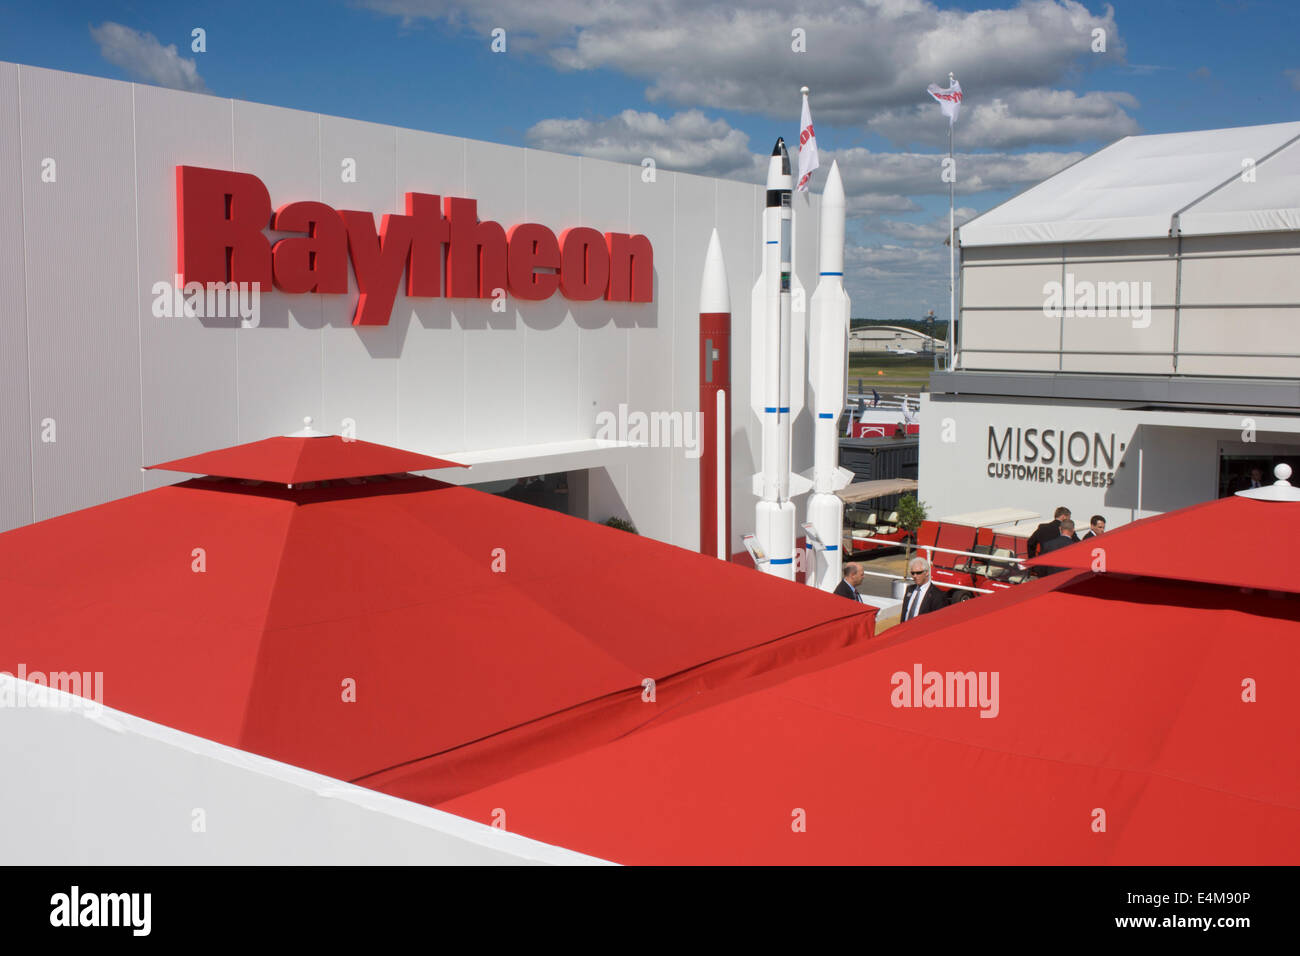 Defence manufacturer Raytheon exhibition stand at the Farnborough Air Show, England. Raytheon Company is a technology - Stock Image